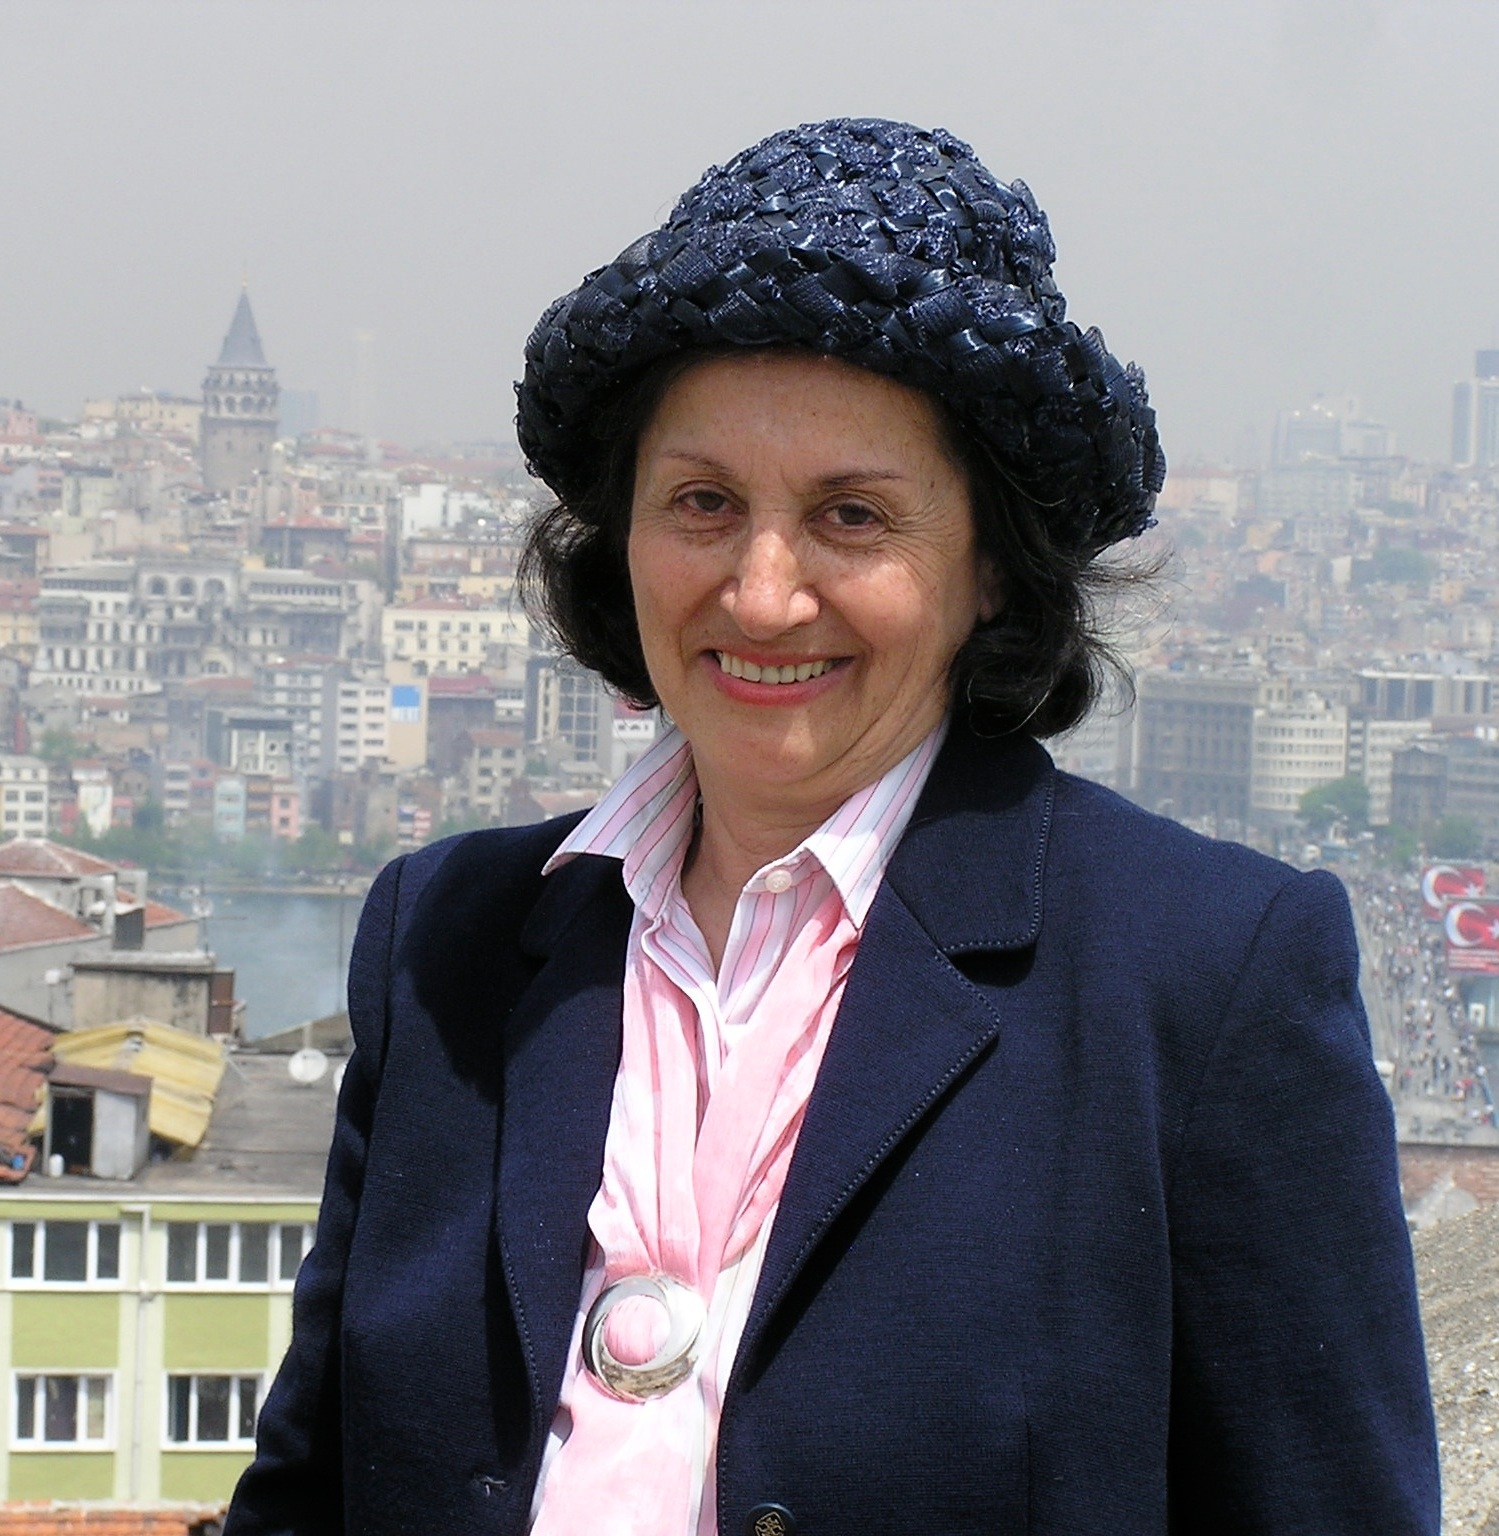 Savoring Edda's Istanbul - Edda Weissenbacher and I co-authored a guidebook of walking tours, and I wrote this article about her for Lale, a publication of the International Women of Istanbul. Edda is a brilliant, amazing woman, and I'm thankful to have shared this collaboration with her.Click here to read the article.